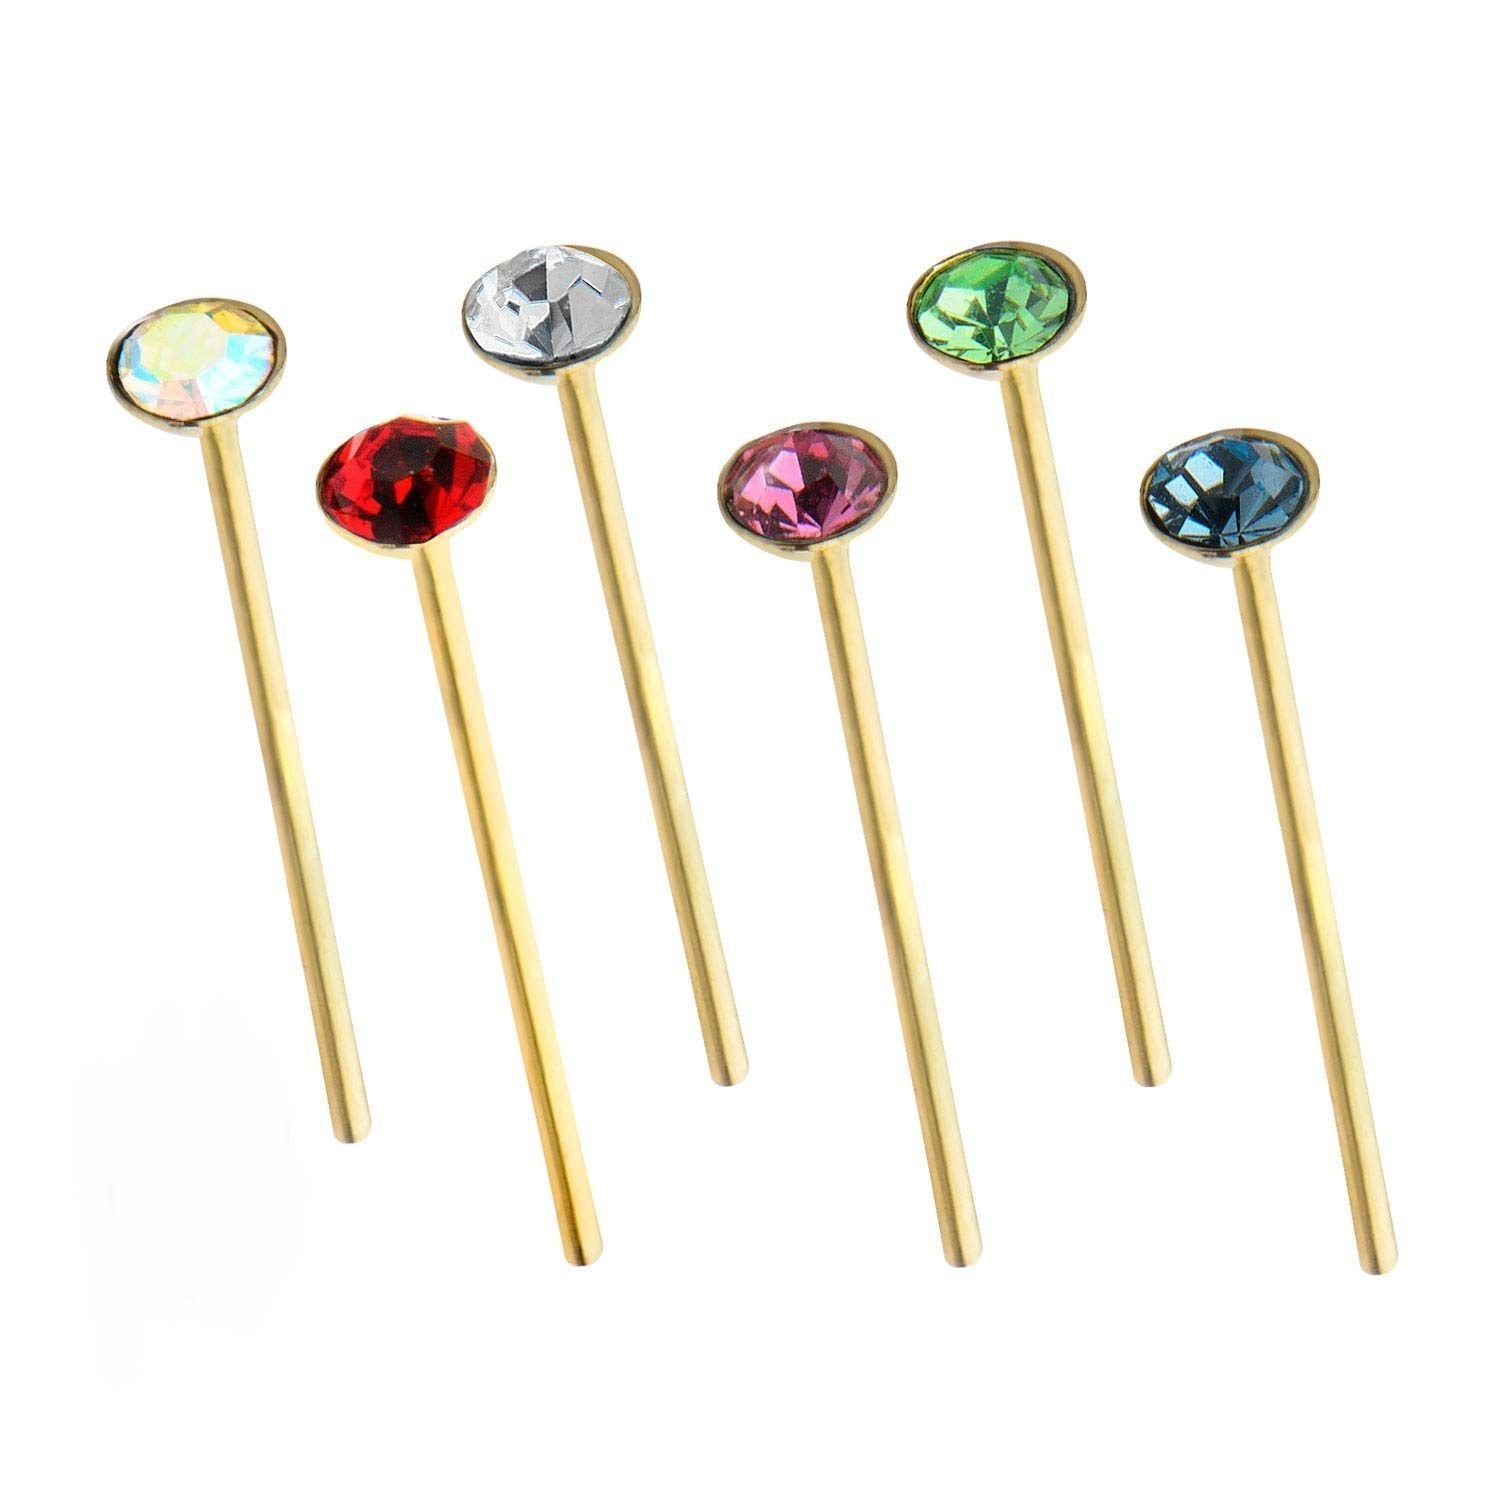 Nose Ring - Nose Pin 9kt Gold 20g Press Fit CZ Bend To Fit Nose Pin sbvgns140 -Rebel Bod-RebelBod